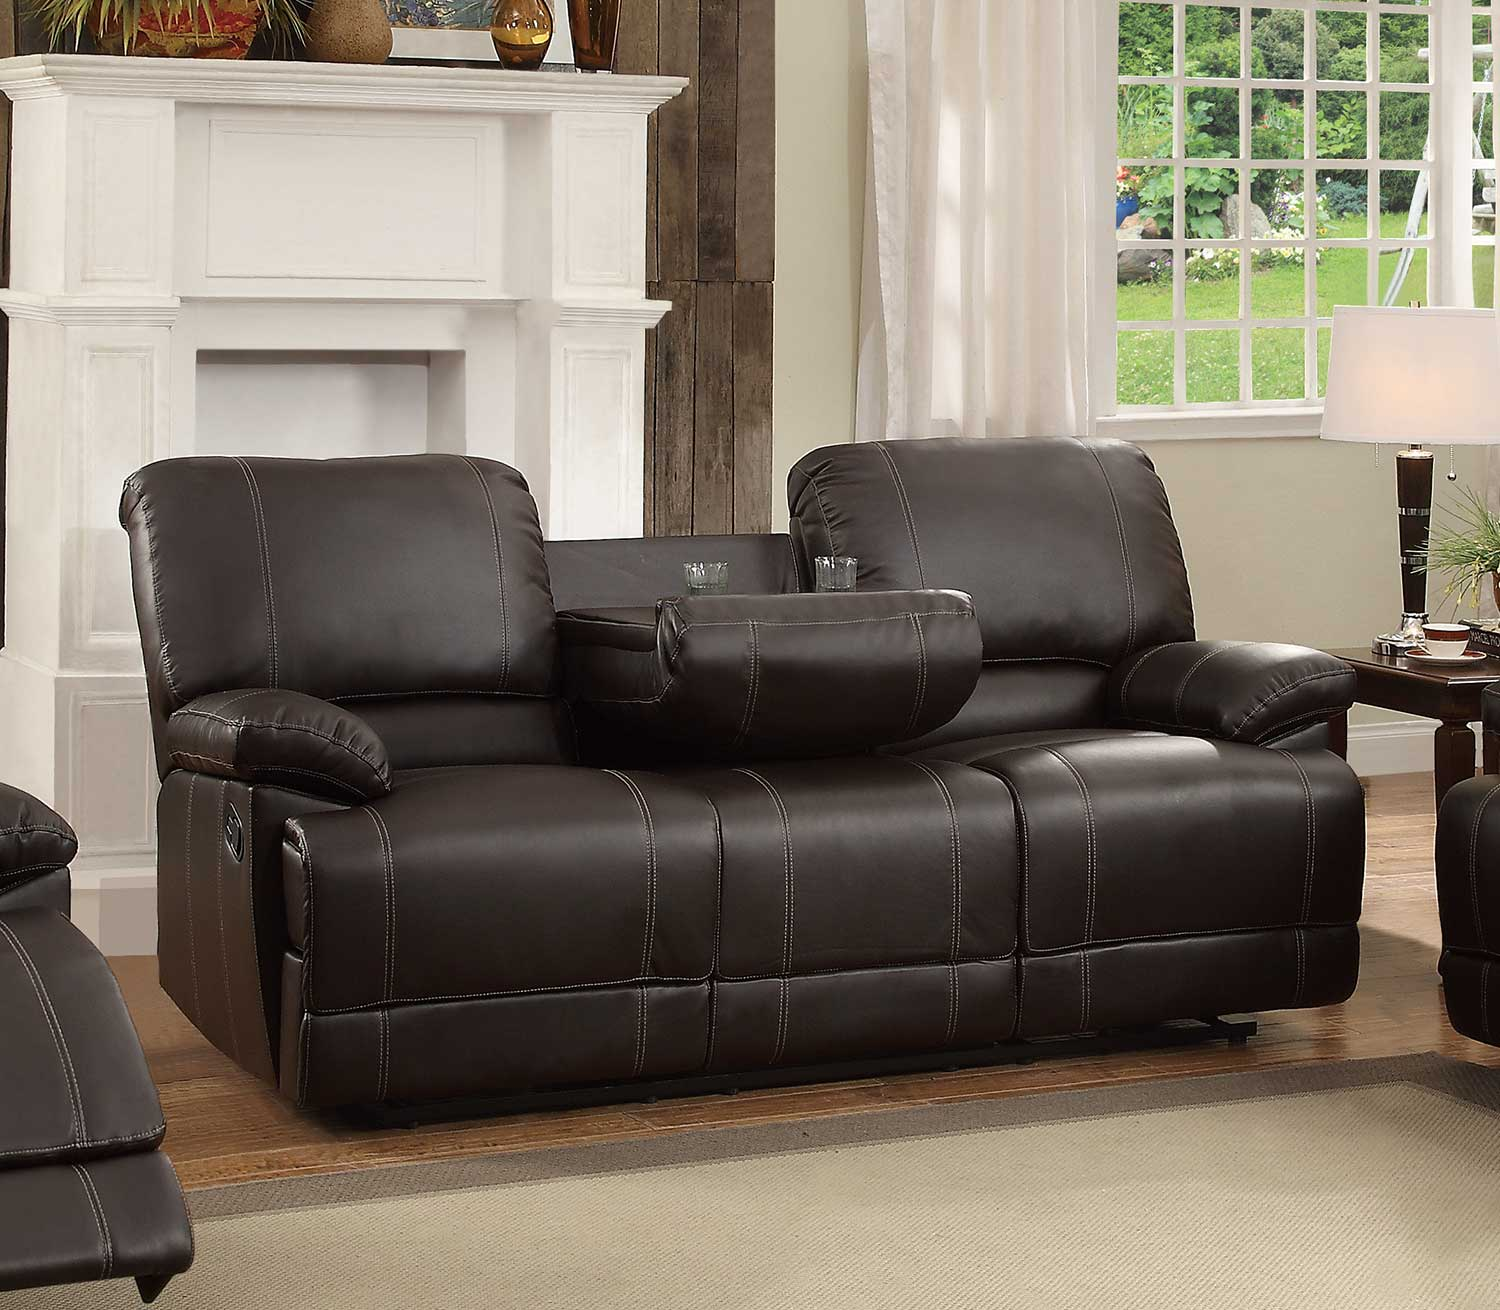 Picture of: Homelegance Cassville Dark Brown Double Reclining Sofa With Center Drop Down Cup Holders Dallas Tx Living Room Sofa Furniture Nation